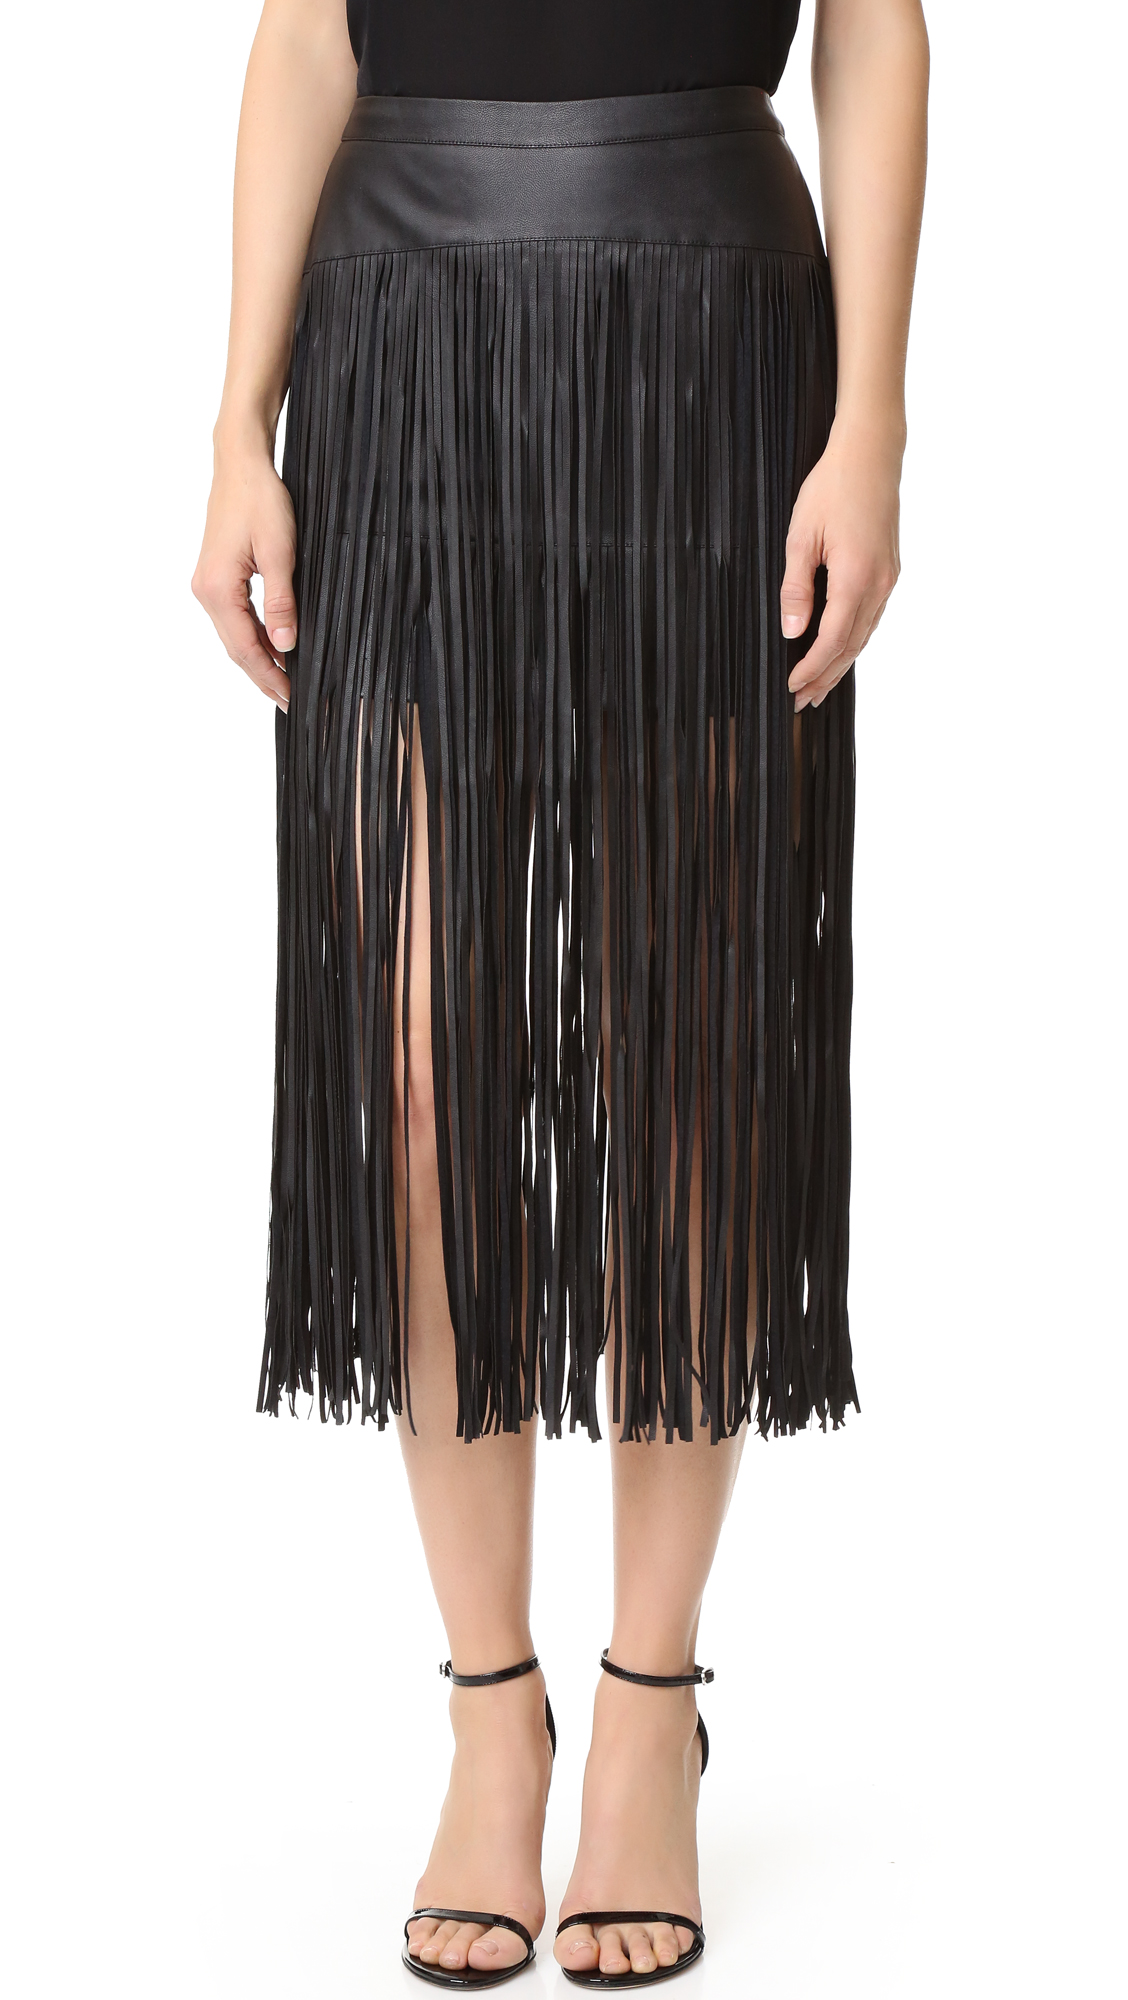 Layers of long fringe add an edgy look to this faux leather MLM LABEL skirt. Exposed back zip. Lined. Fabric: Faux leather. Shell: 60% polyester/40% polyurethane. Lining: 97% polyester/3% elastane. Spot clean. Imported, China. Measurements Length 1: 14.5in / 37cm,